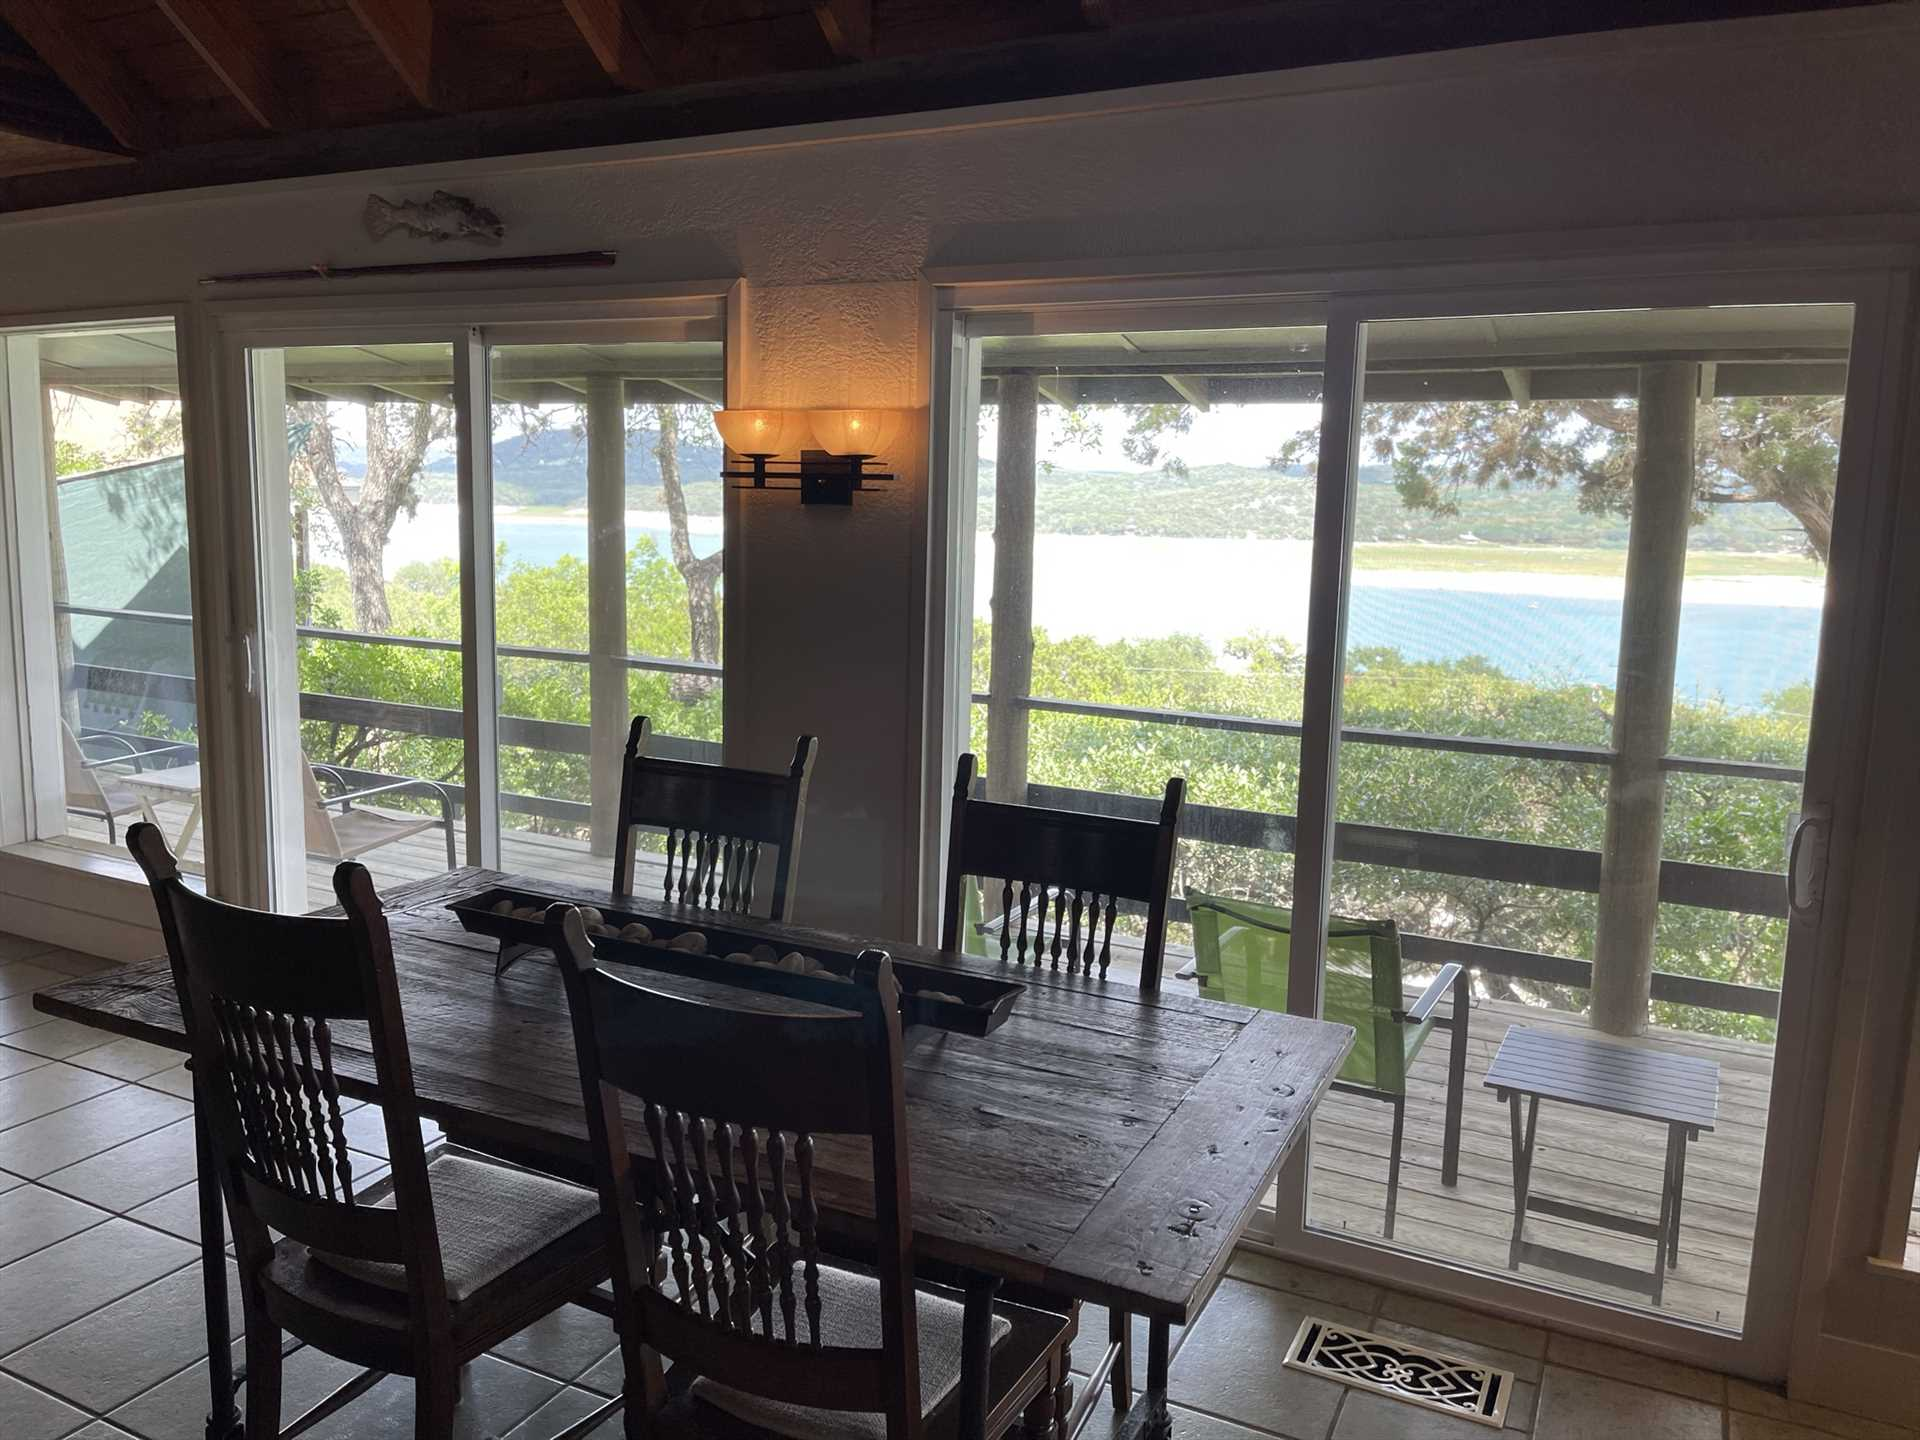 Plenty of windows facing the back deck give you access to inspiring lake views from inside, too!